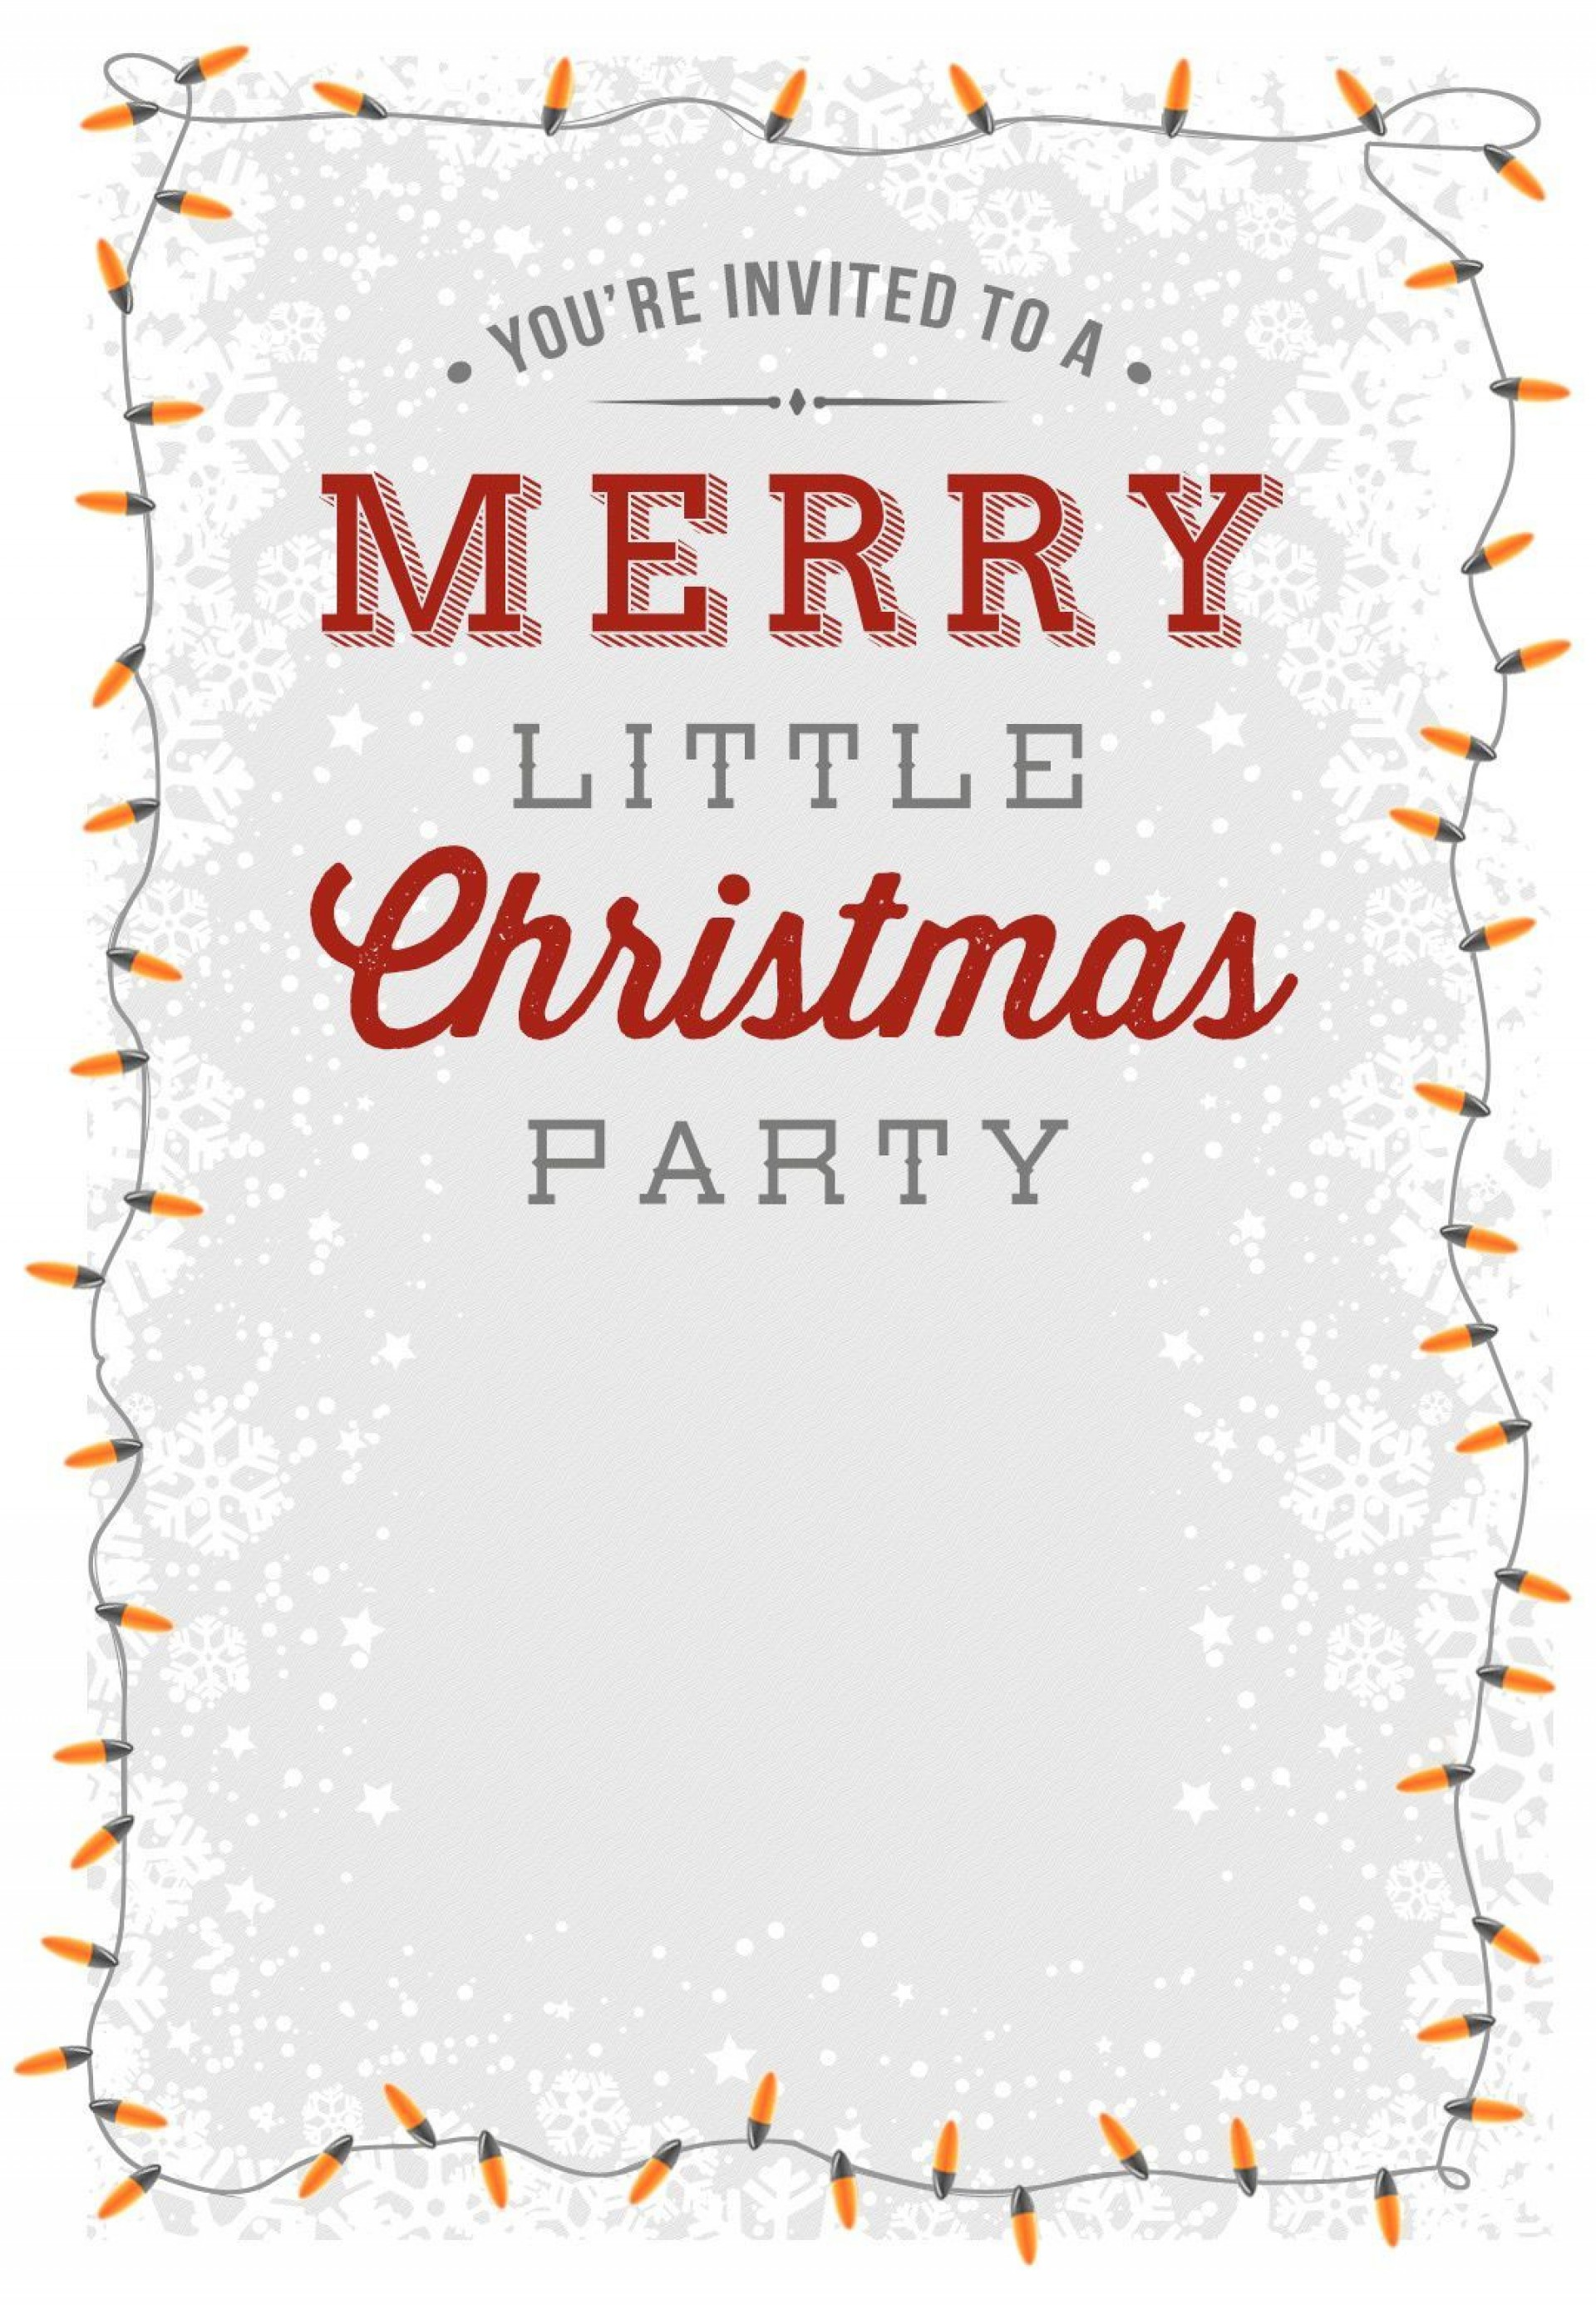 007 Magnificent Christma Party Invite Template Highest Clarity  Microsoft Word Free Download Holiday Invitation Powerpoint1920